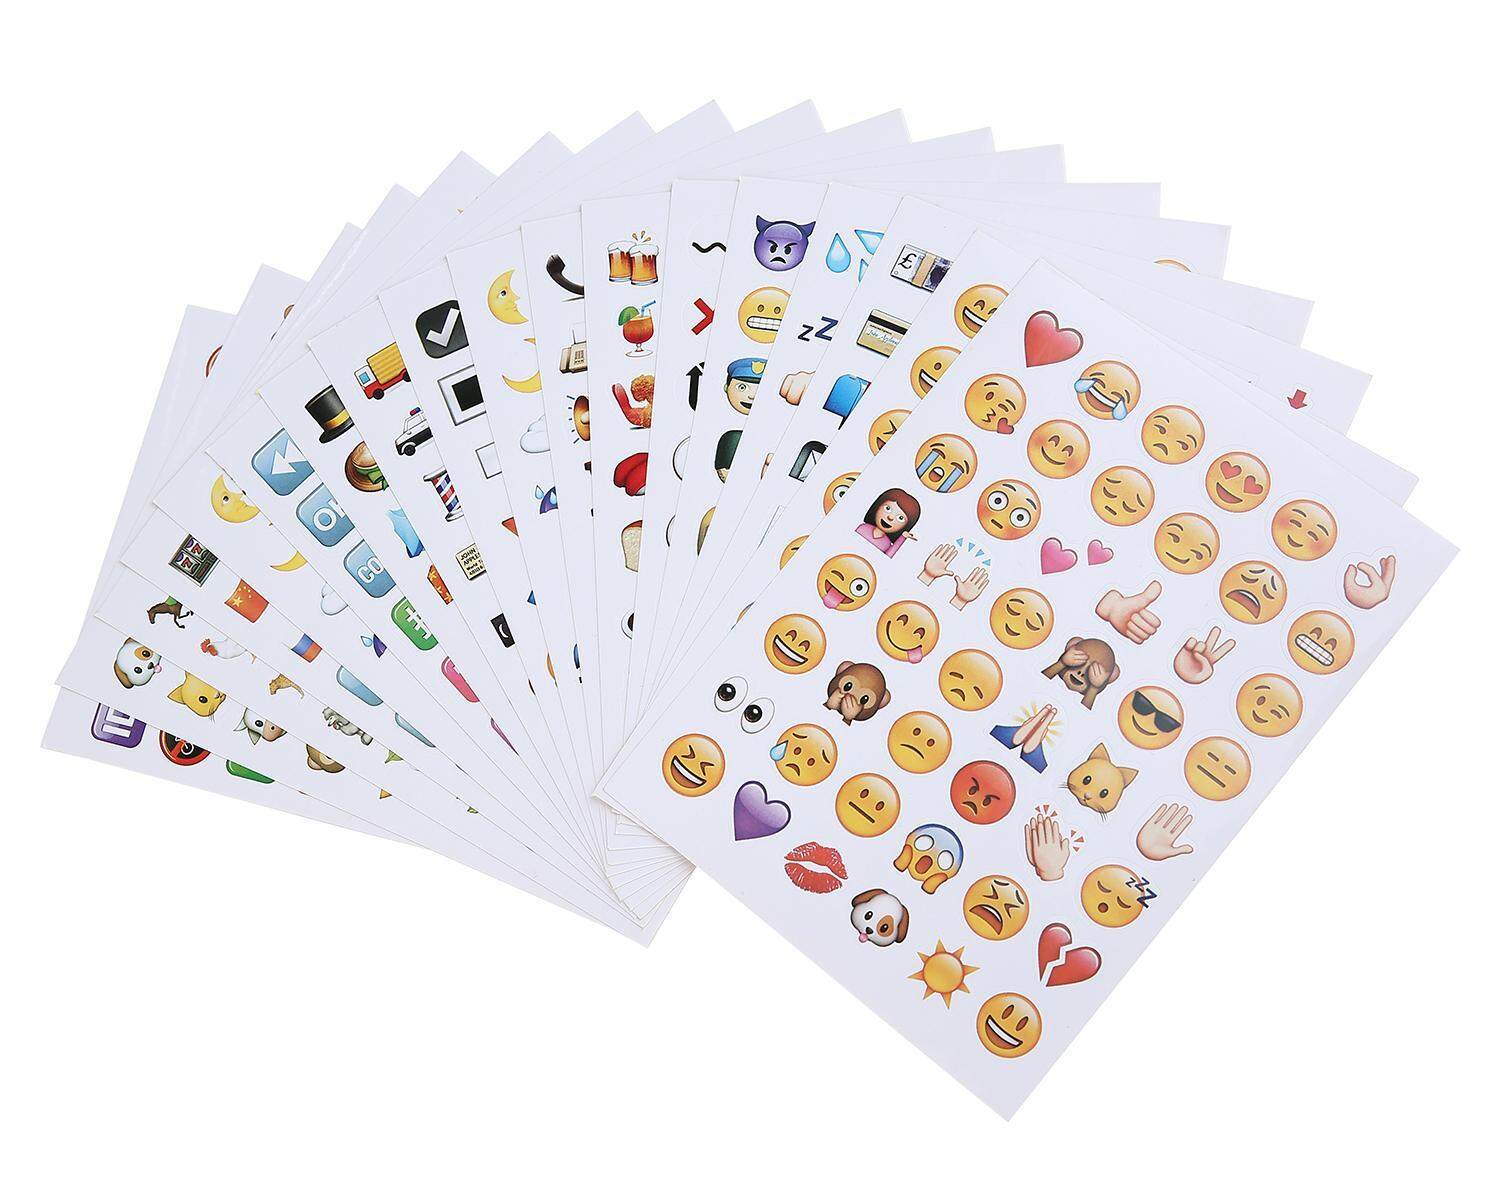 dmscs Emoji Stickers 19 Sheets 912 With Happy Faces Kid Stickers For Phone Facebook Twitter - intl